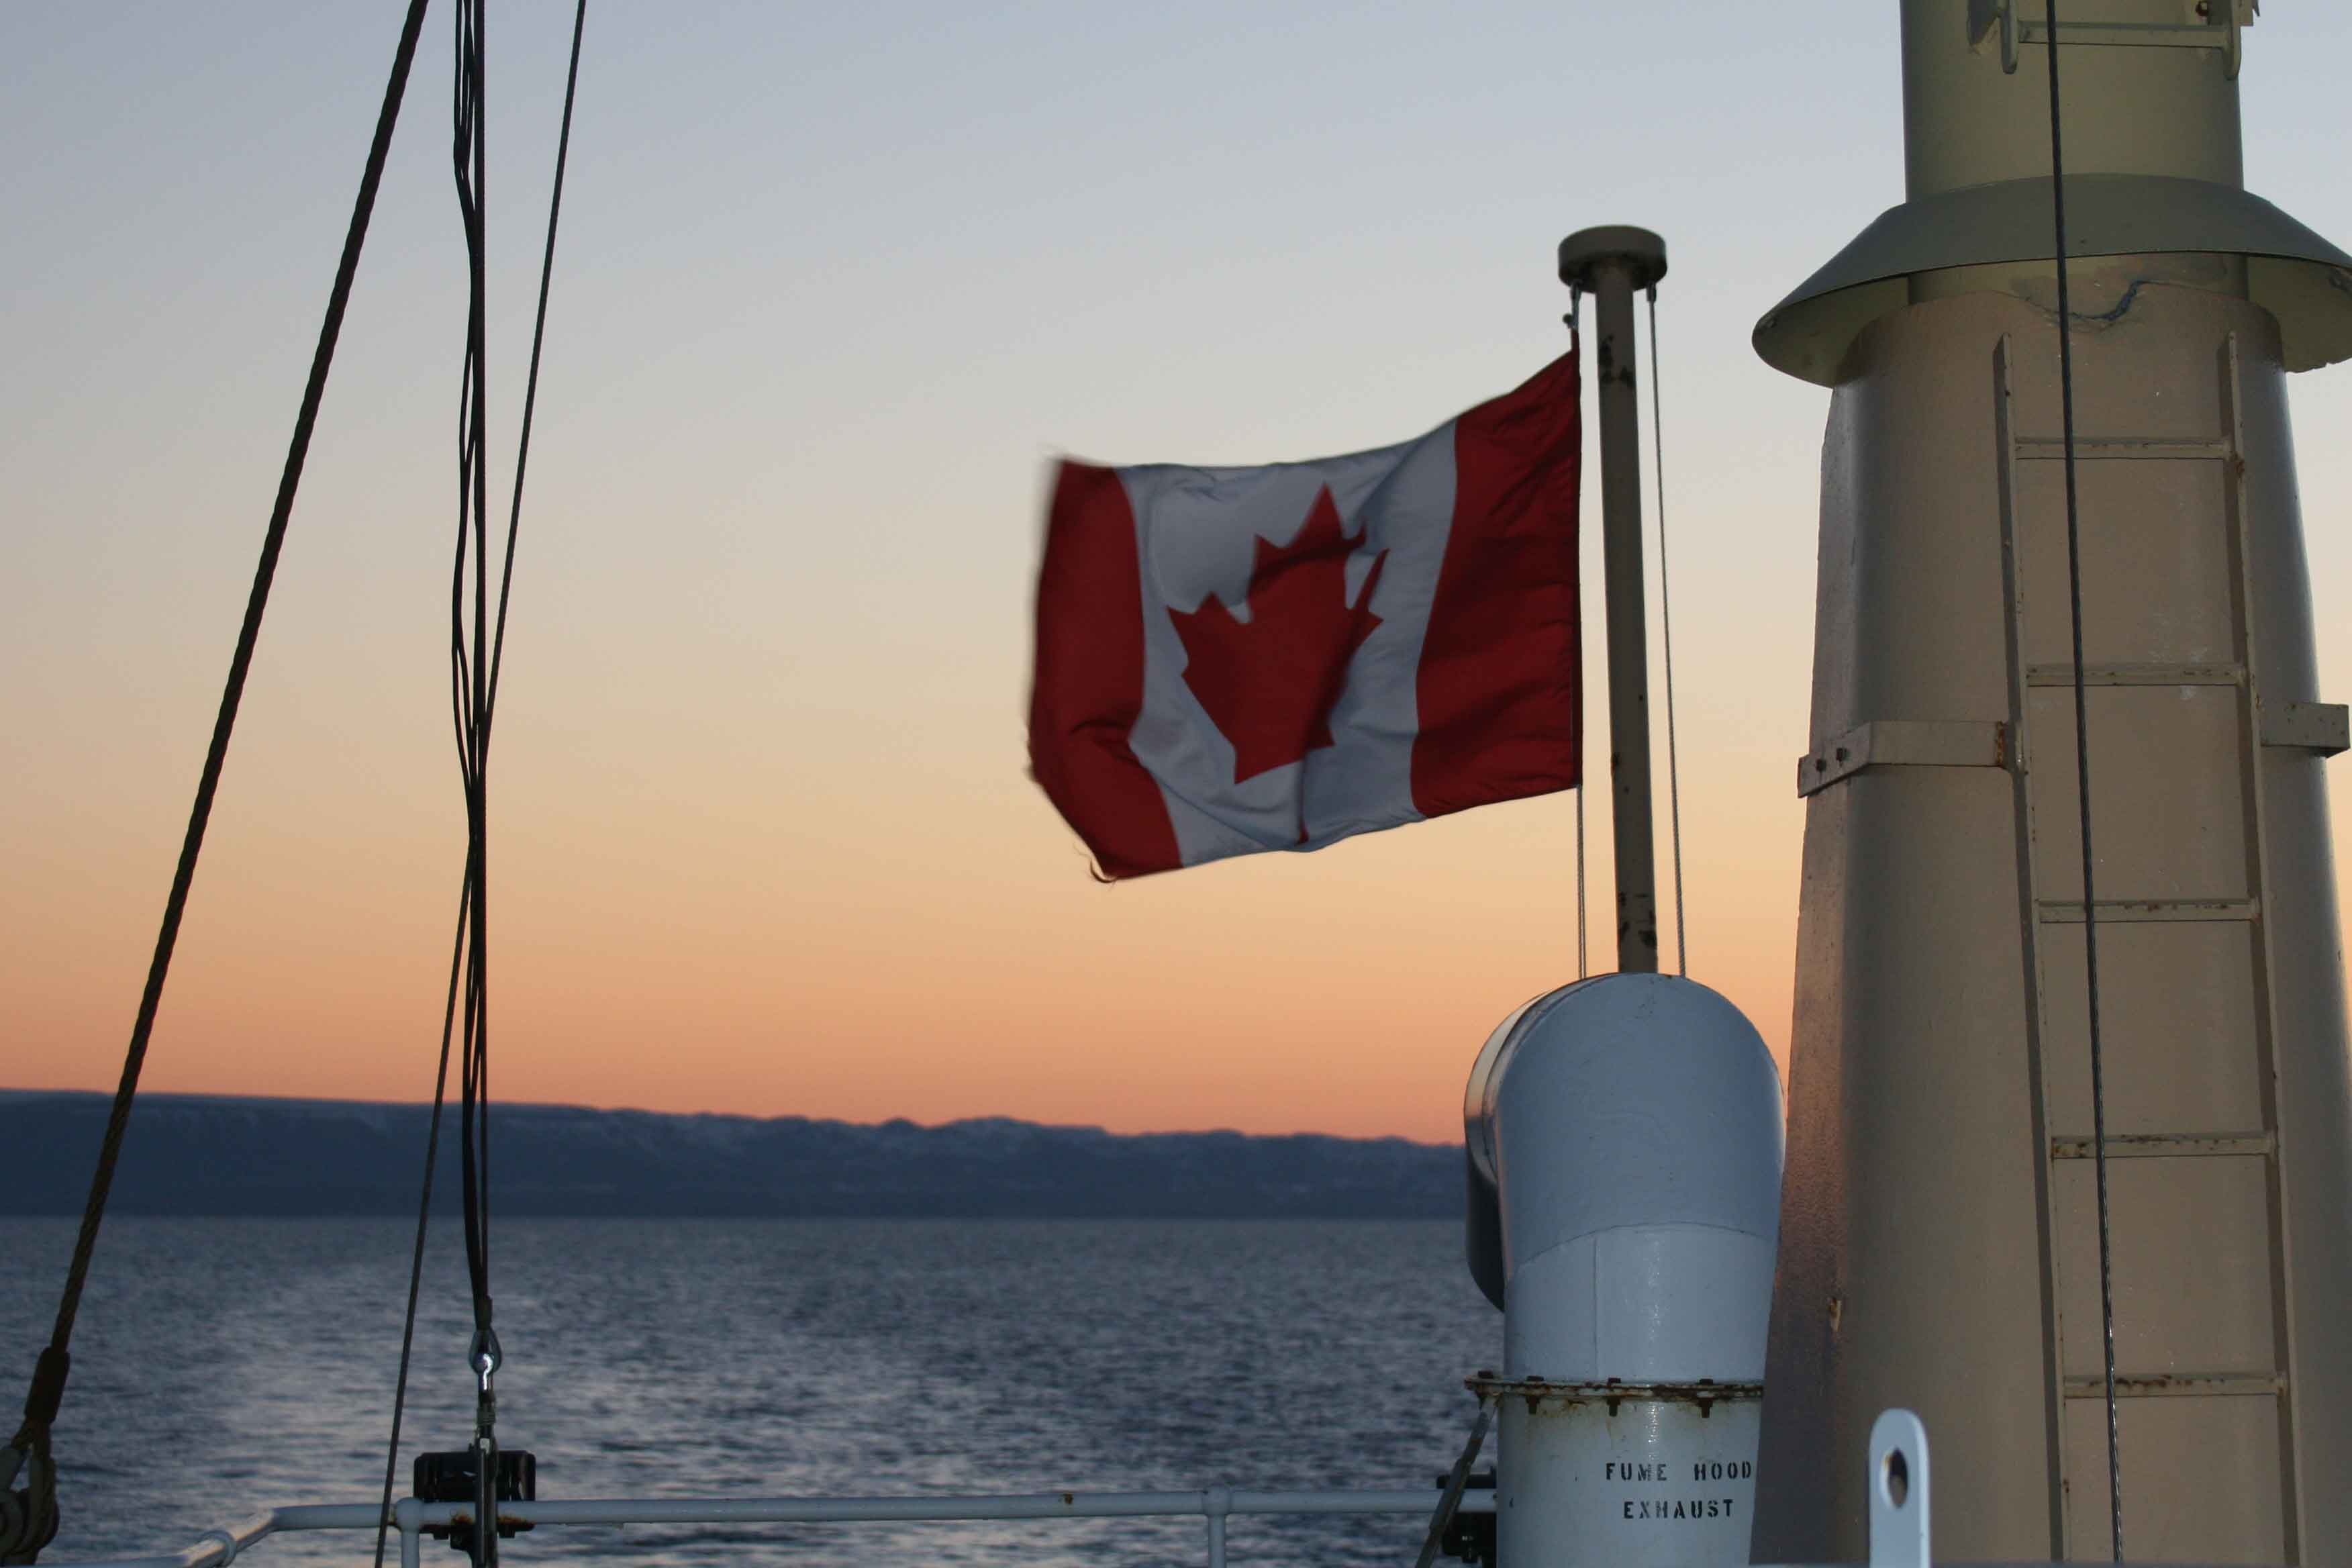 CCGS Hudson off the coast of Newfoundland & Labrador flying the Canadian flag. Photo Credit: Hilary Moors-Murphy